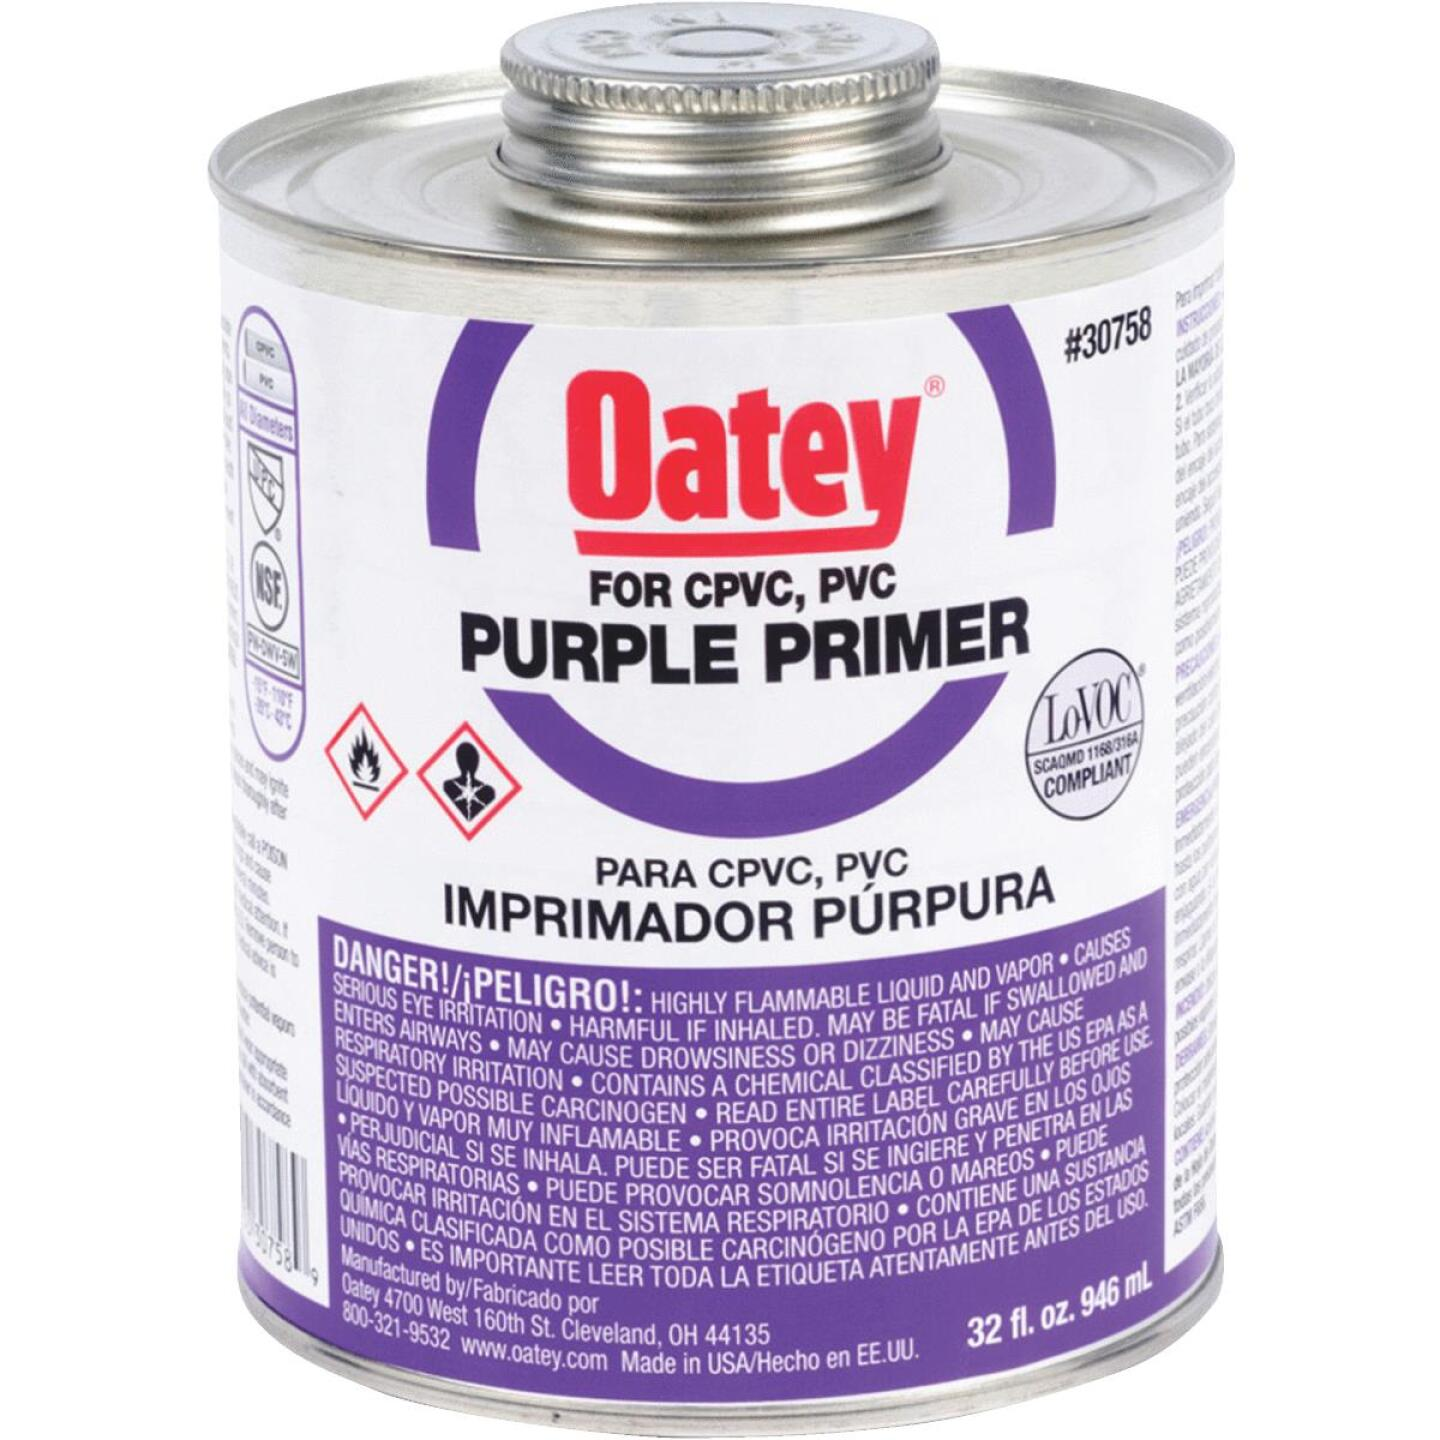 Oatey 32 Oz. Purple Pipe and Fitting Primer for PVC/CPVC Image 1